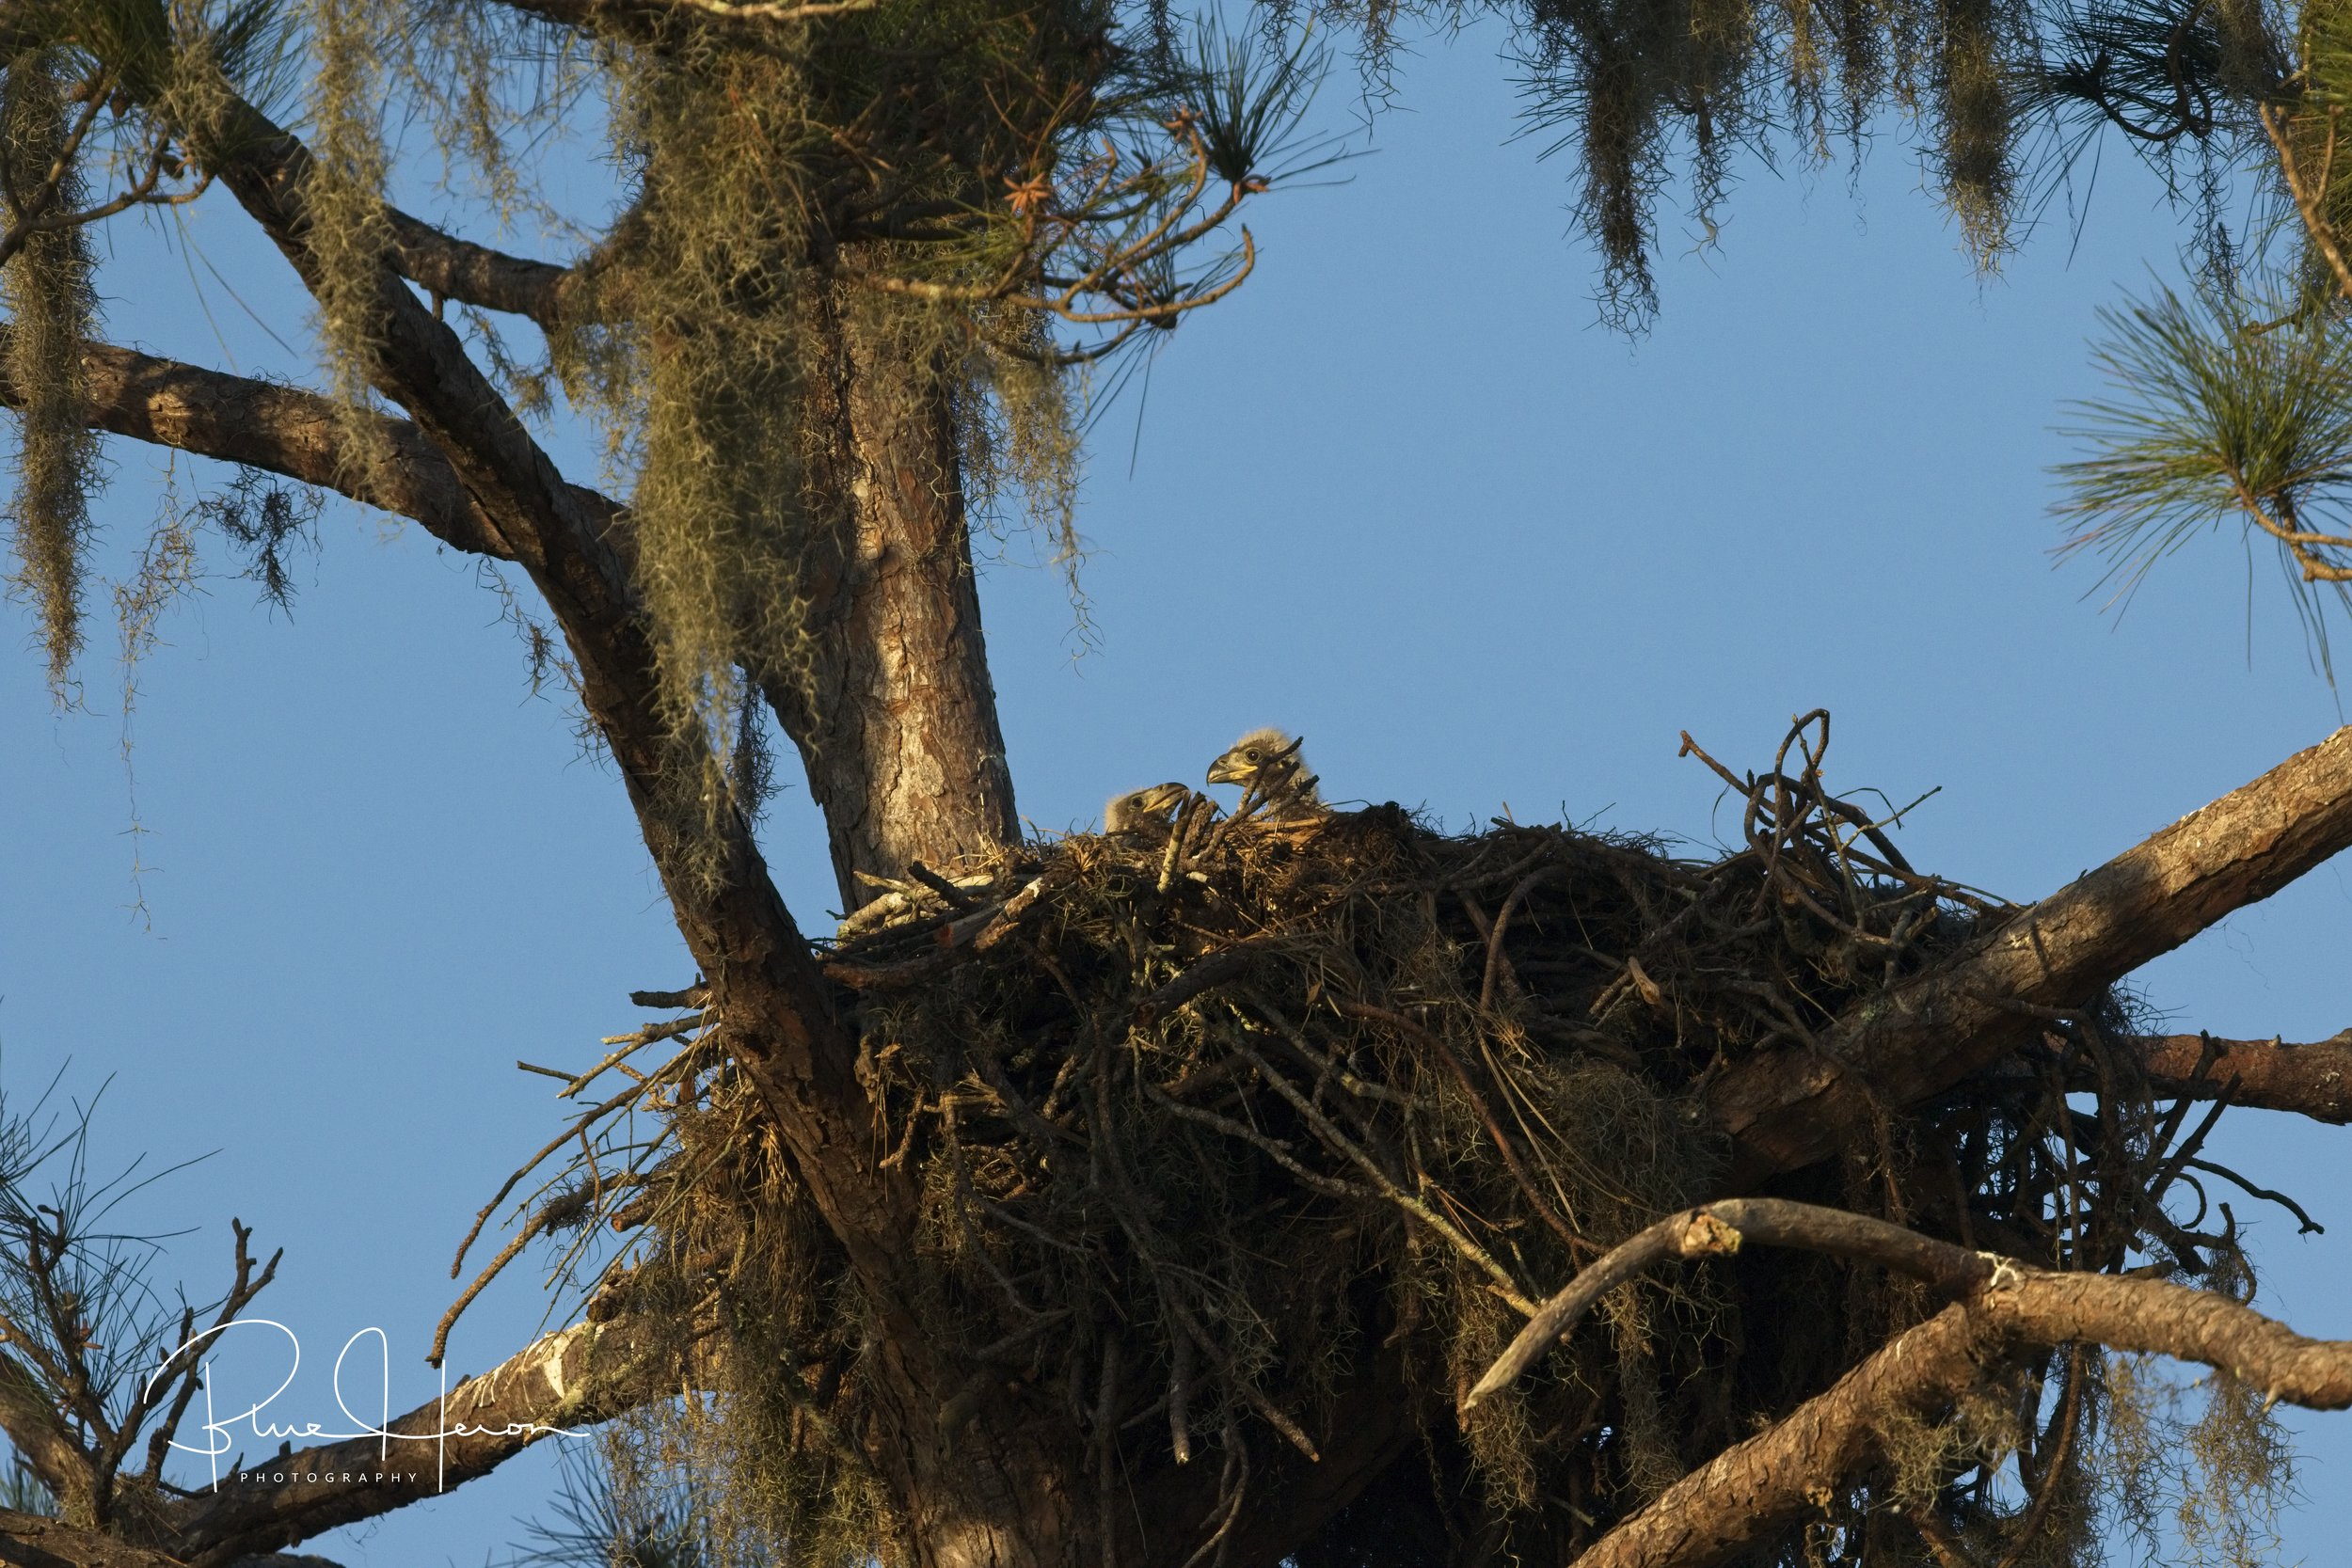 Florida Bald Eagle nest in a pine tree..two small fuzzy eaglet heads can barely be seen peeking up over the rim..